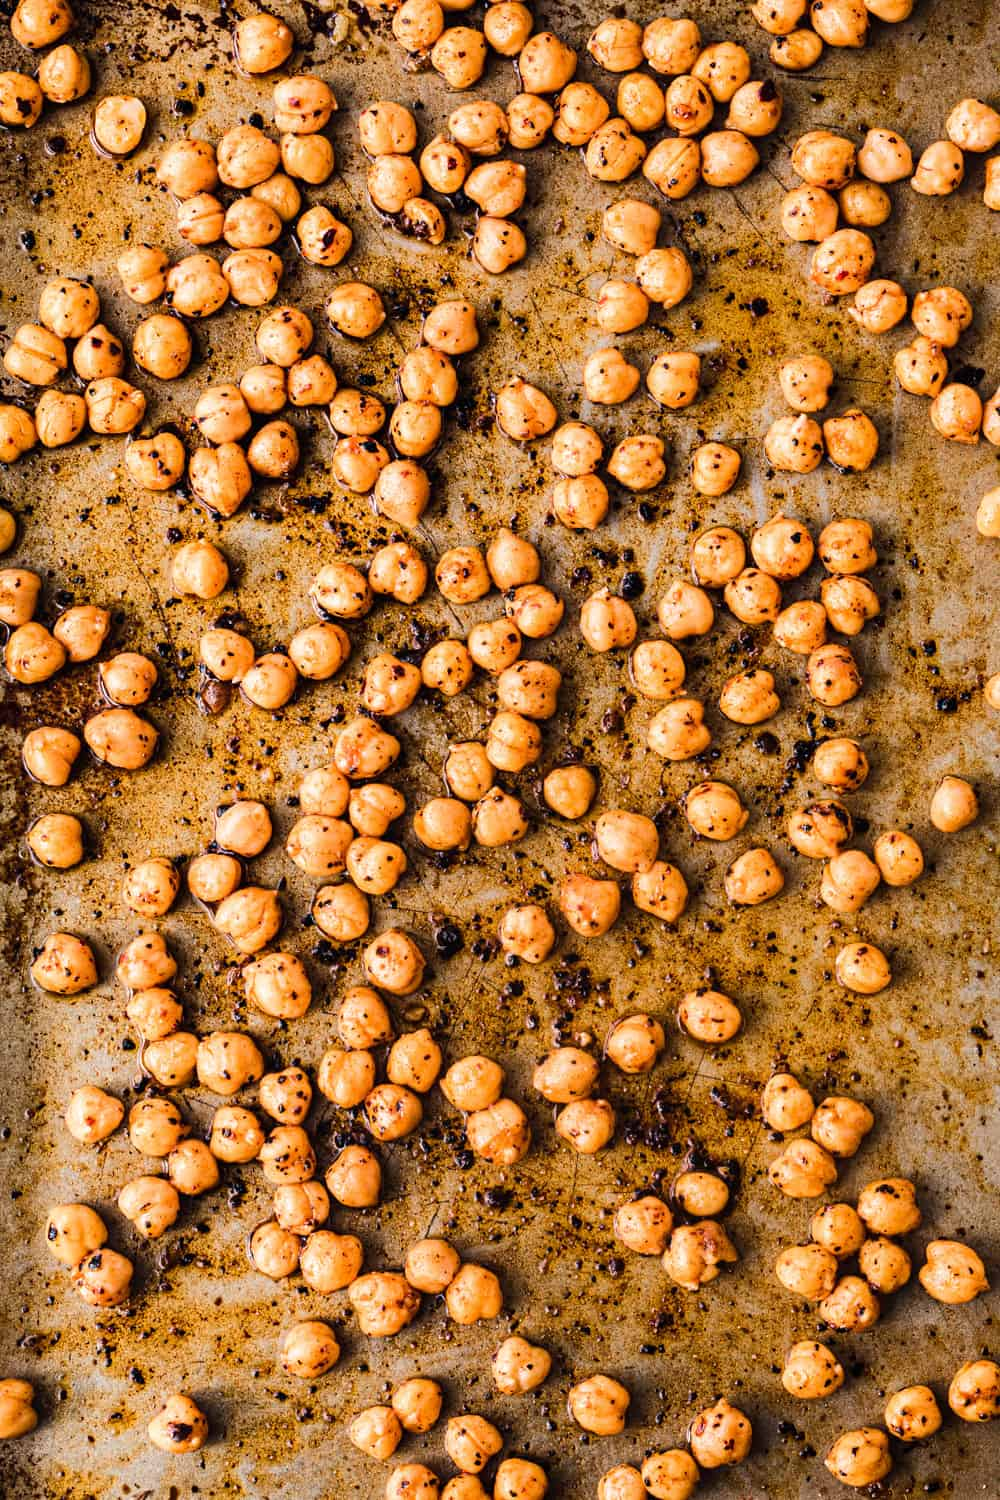 chickpeas, also called garbanzo beans, with cumin, smoked paprika, urfa chili, sumac, salt and olive oil and a cookie sheet, pre-oven.